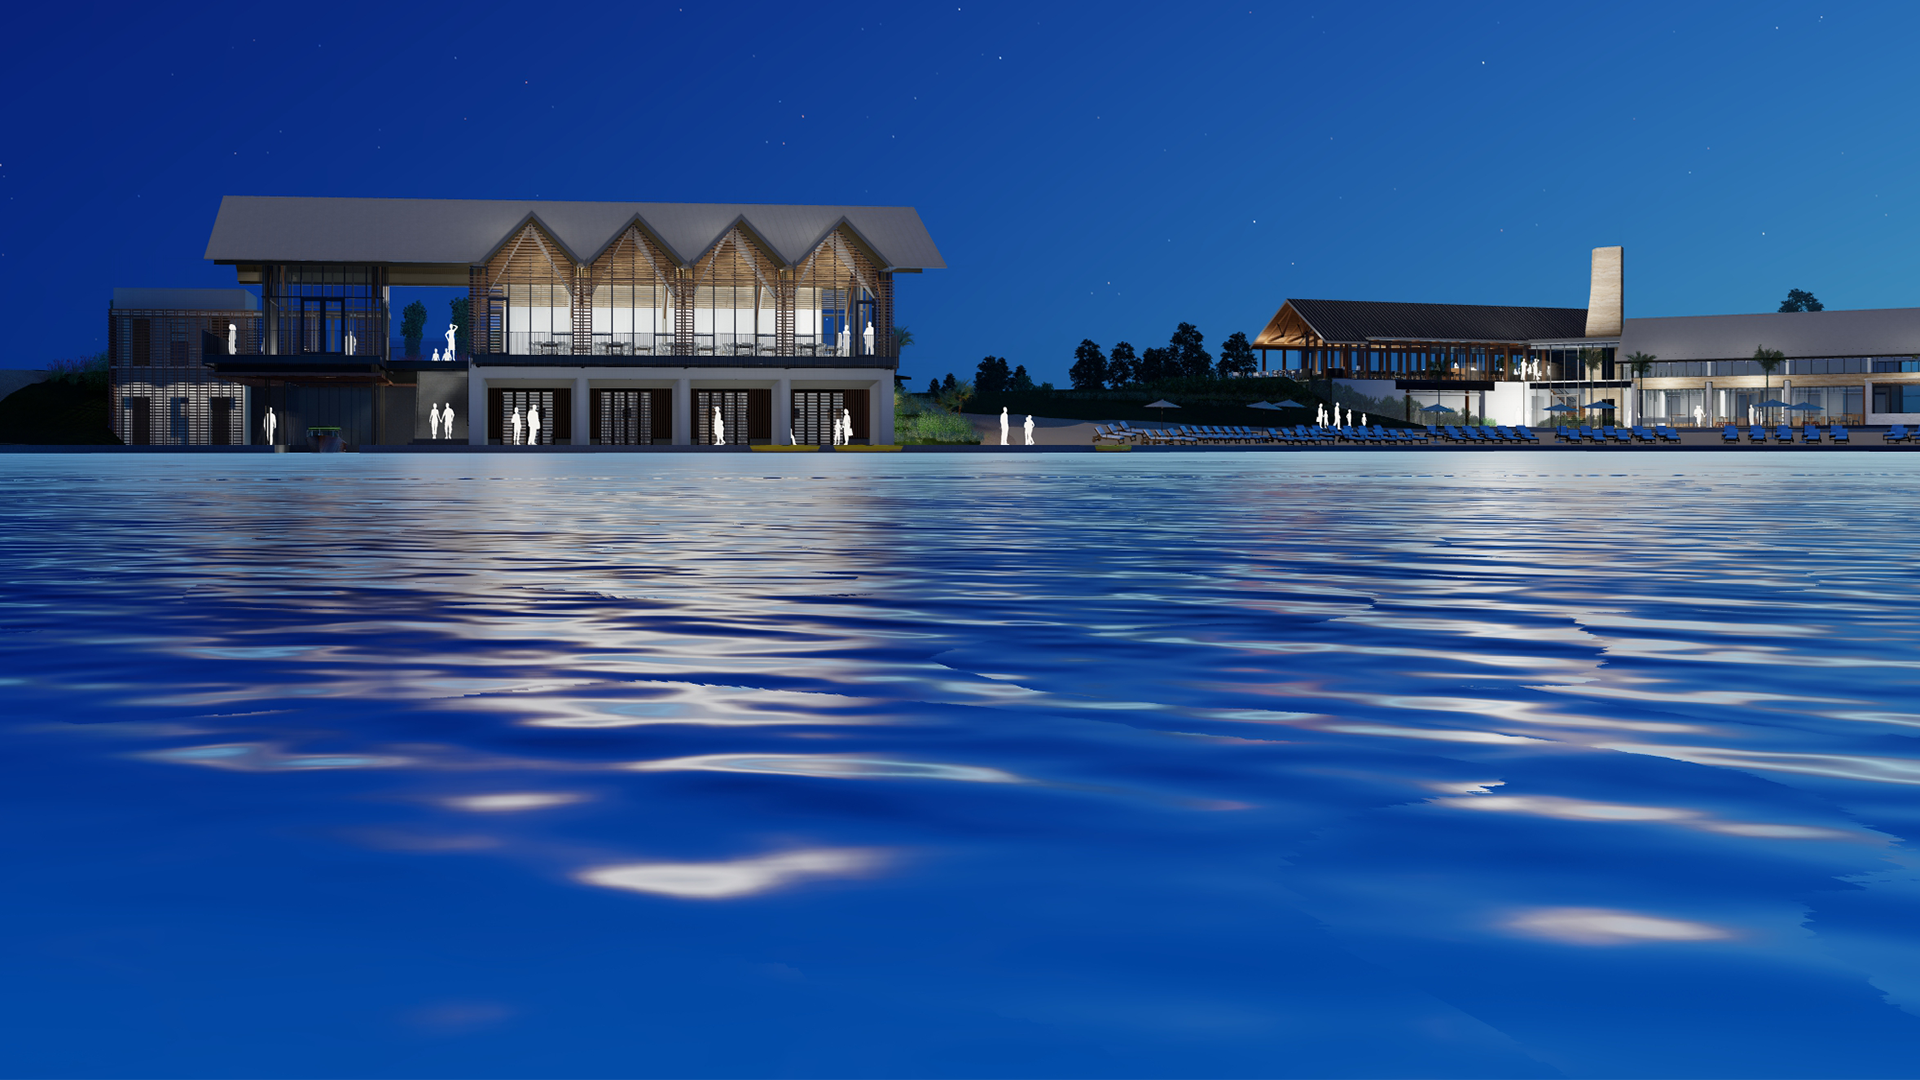 20 acres of waterside amenities